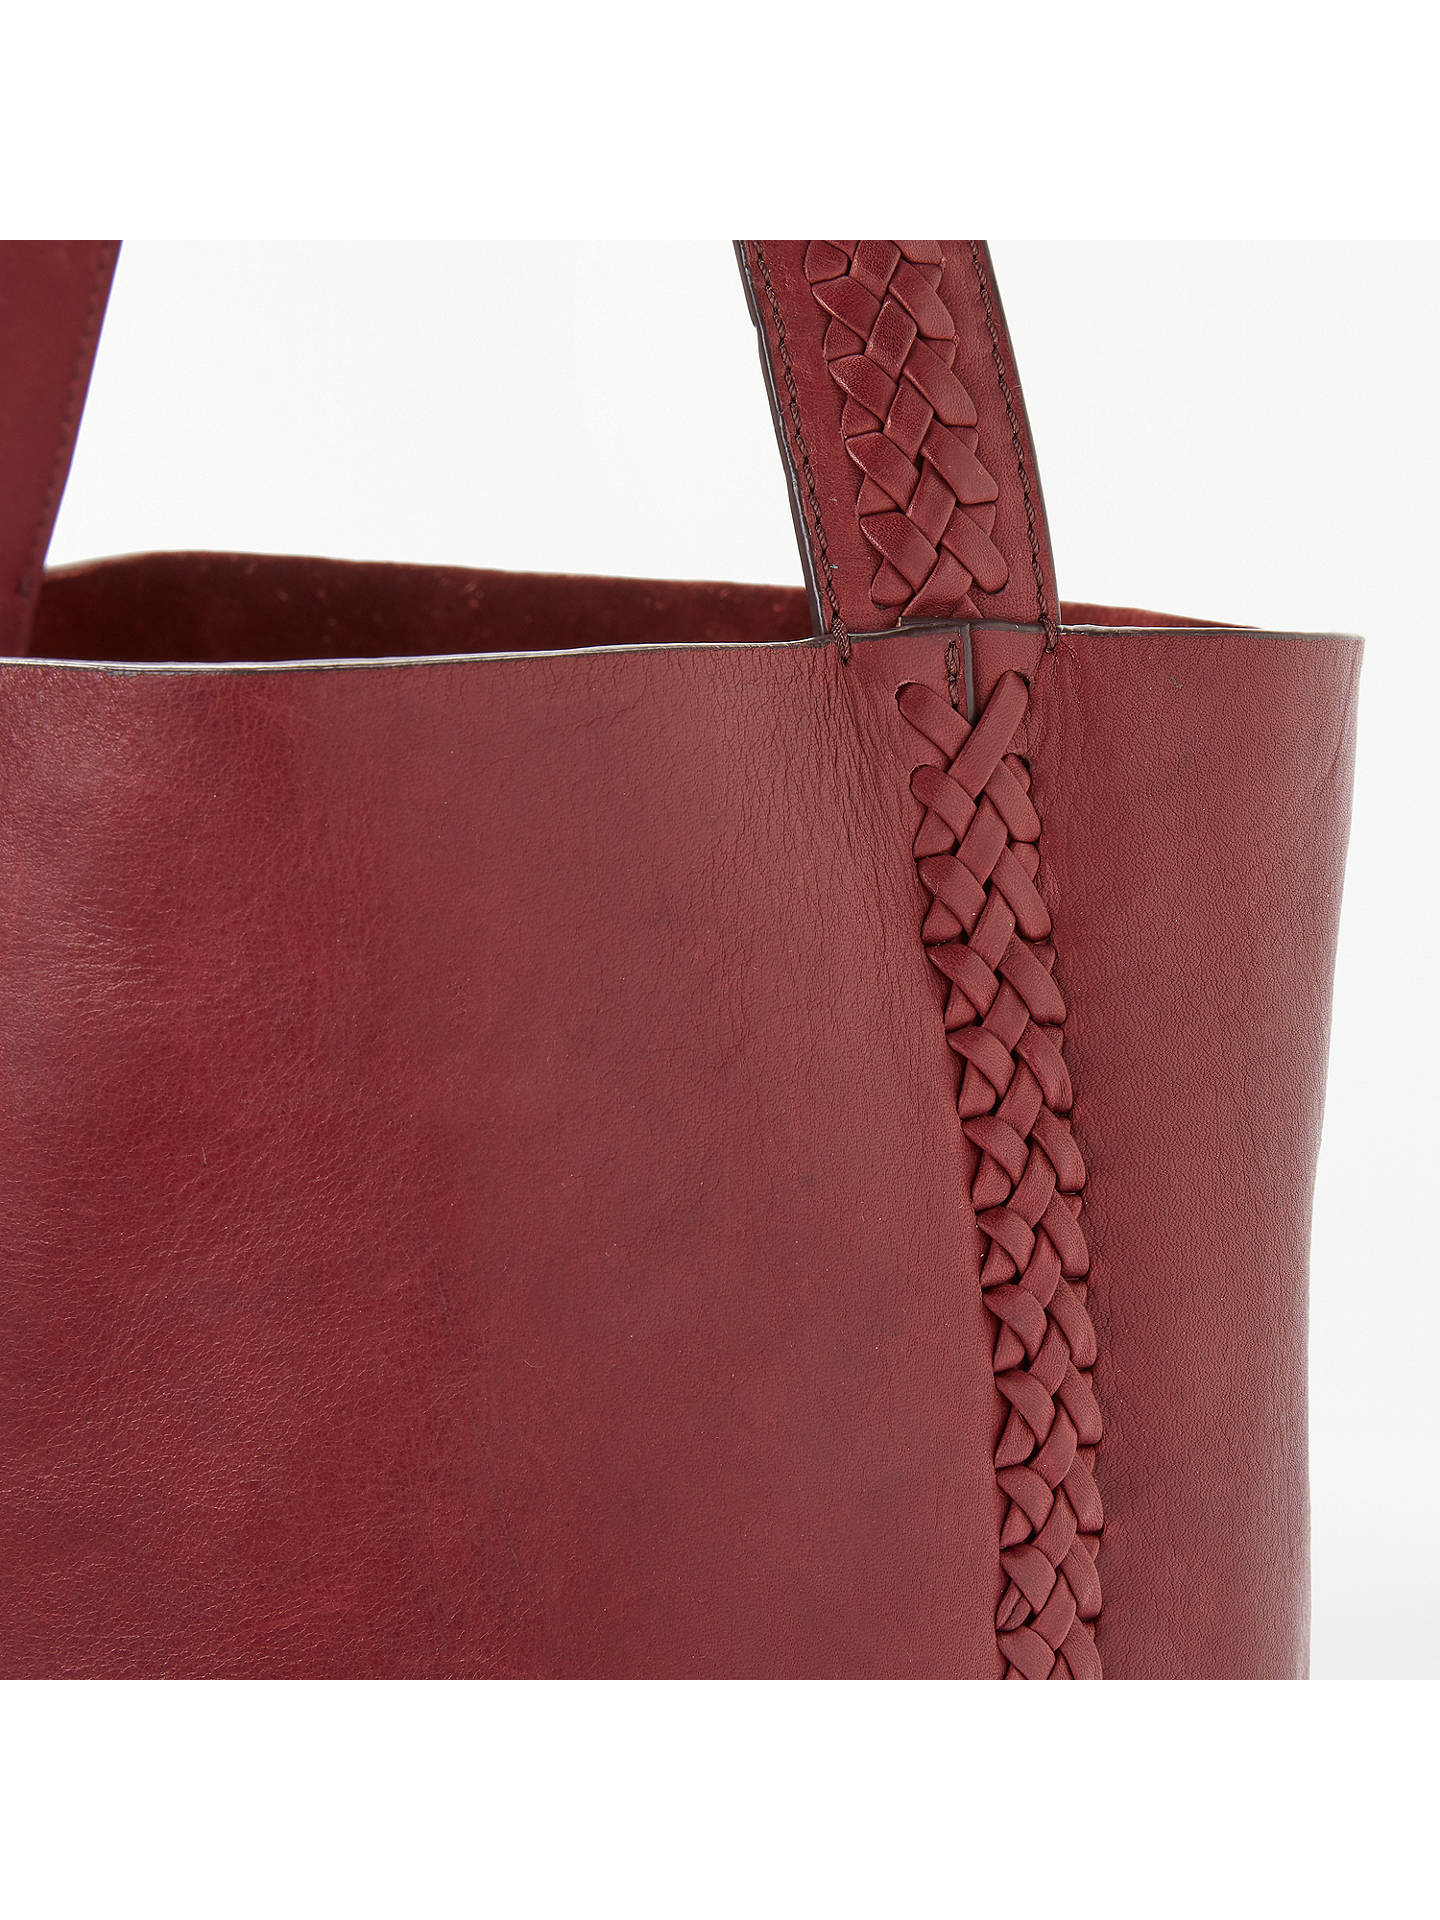 BuyAND/OR Isabella Leather Whipstitch Large Bucket Bag, Wine Online at johnlewis.com